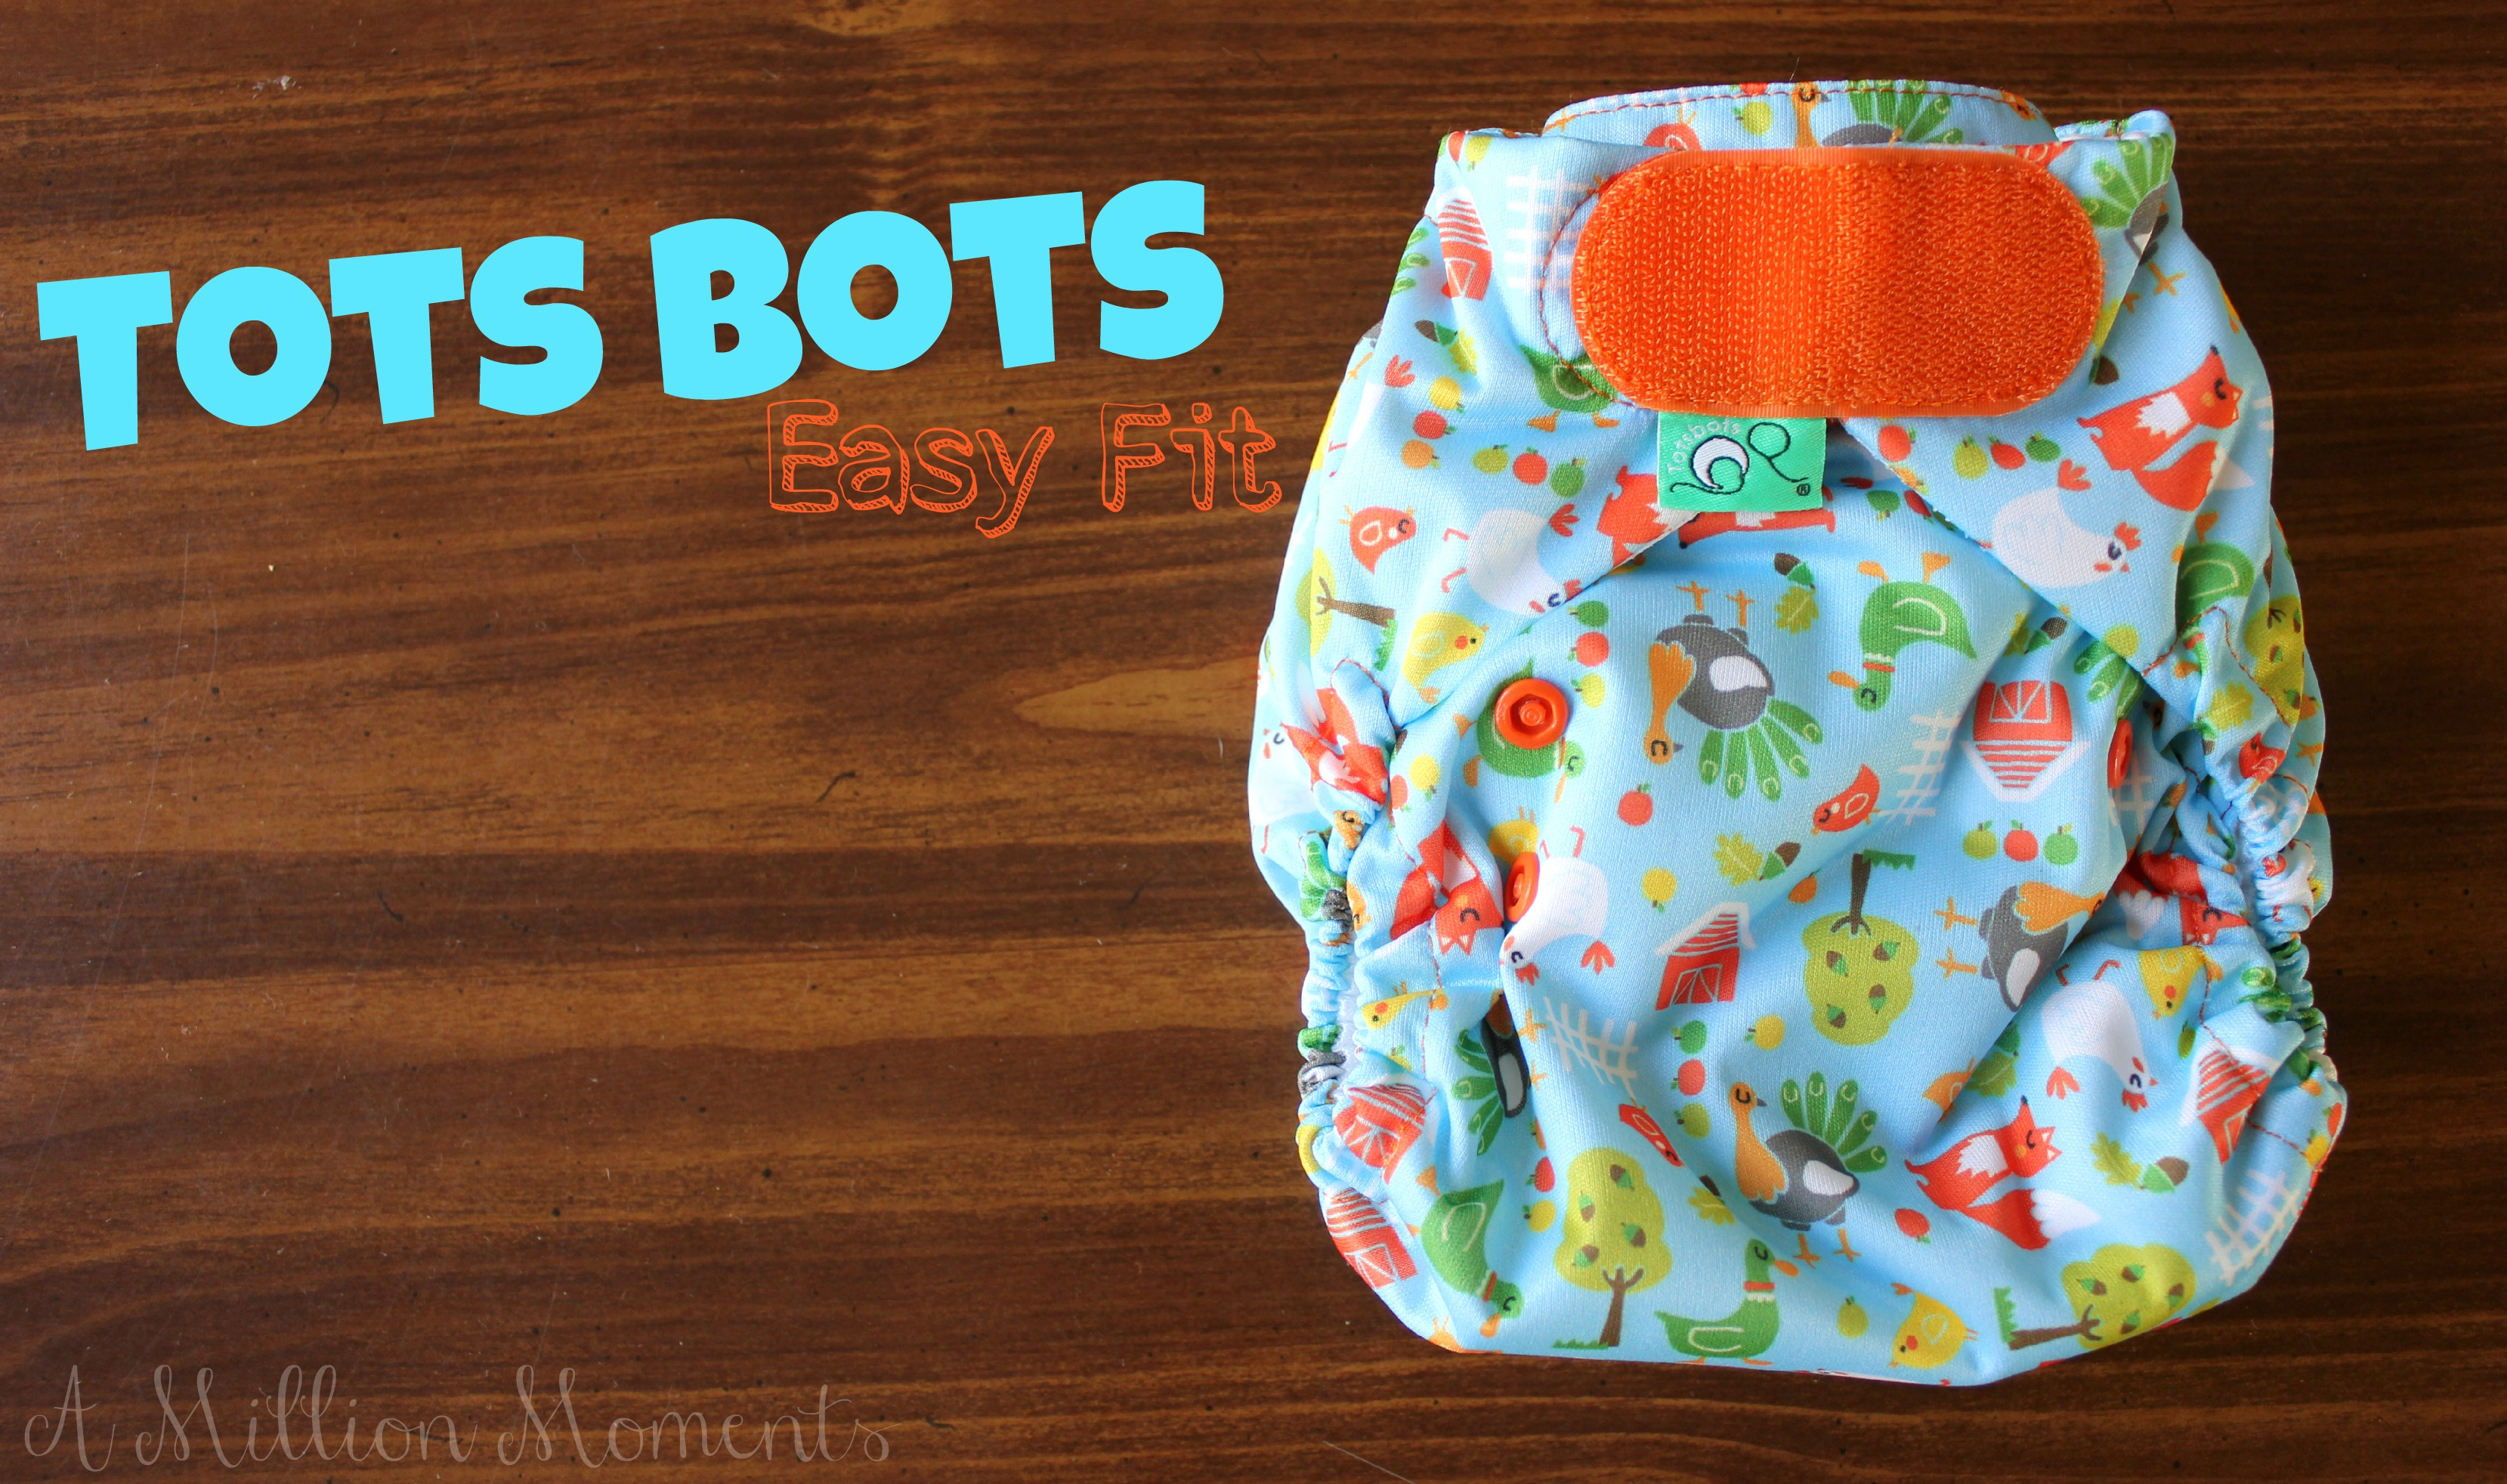 Tots Bots Easy Fit Cloth Diaper